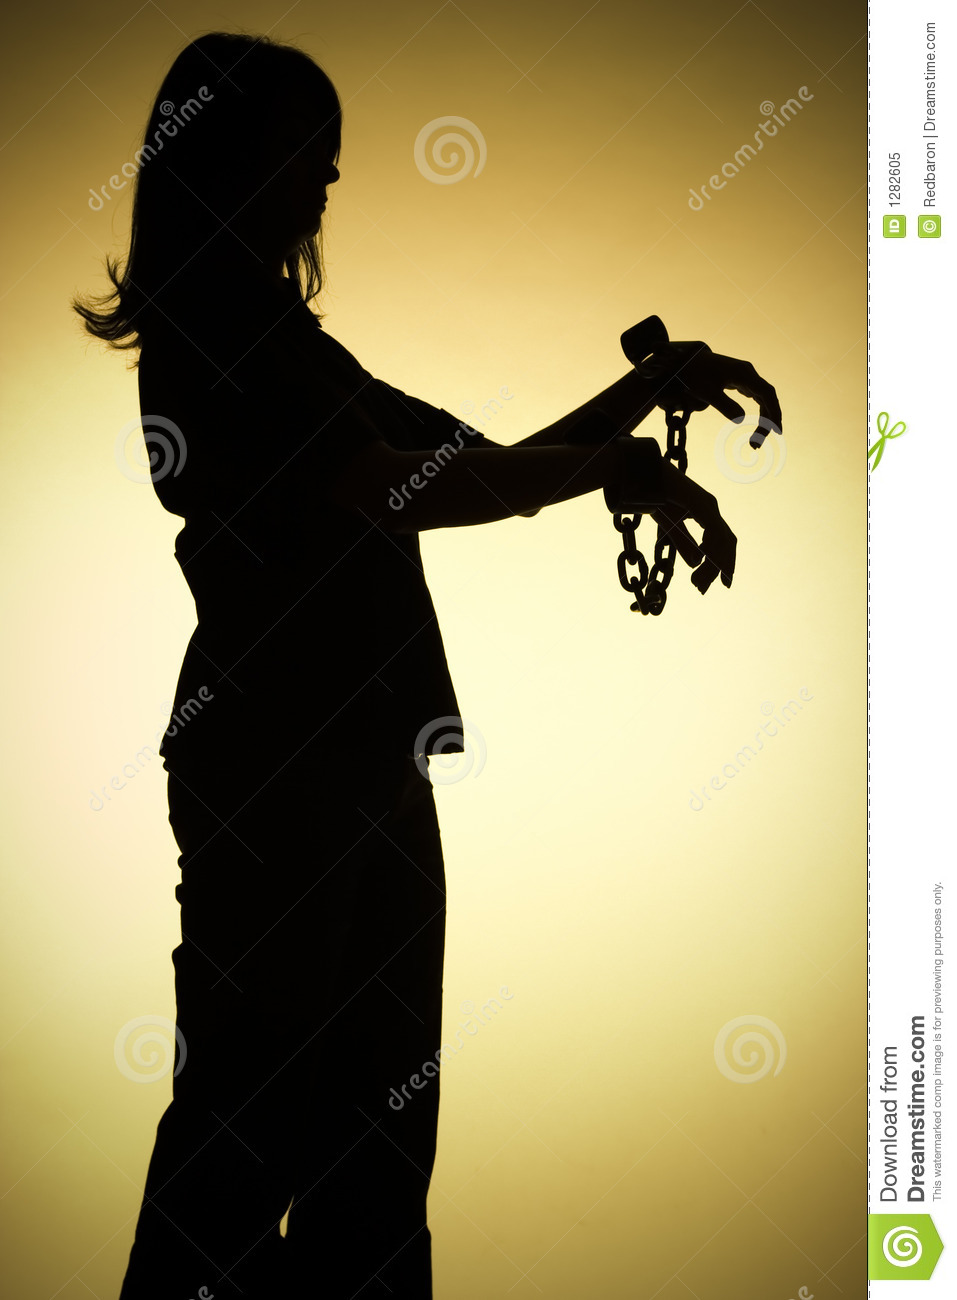 Silhouette of woman with chains